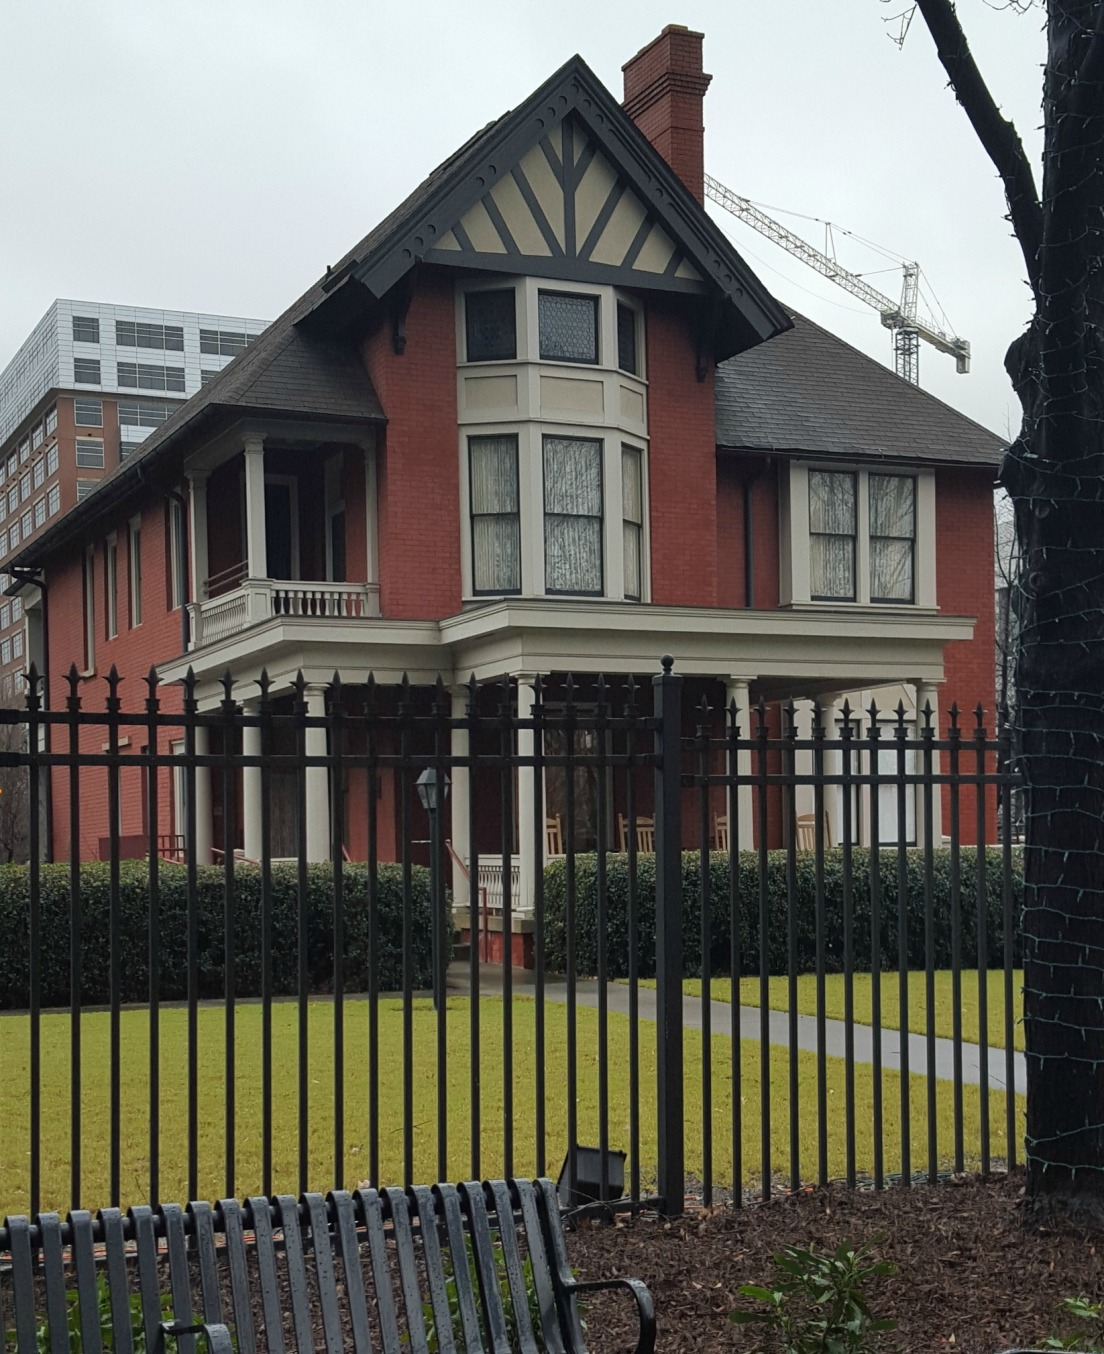 The Margaret Mitchell House, where the tiny apartment the author and her husband lived in was located.